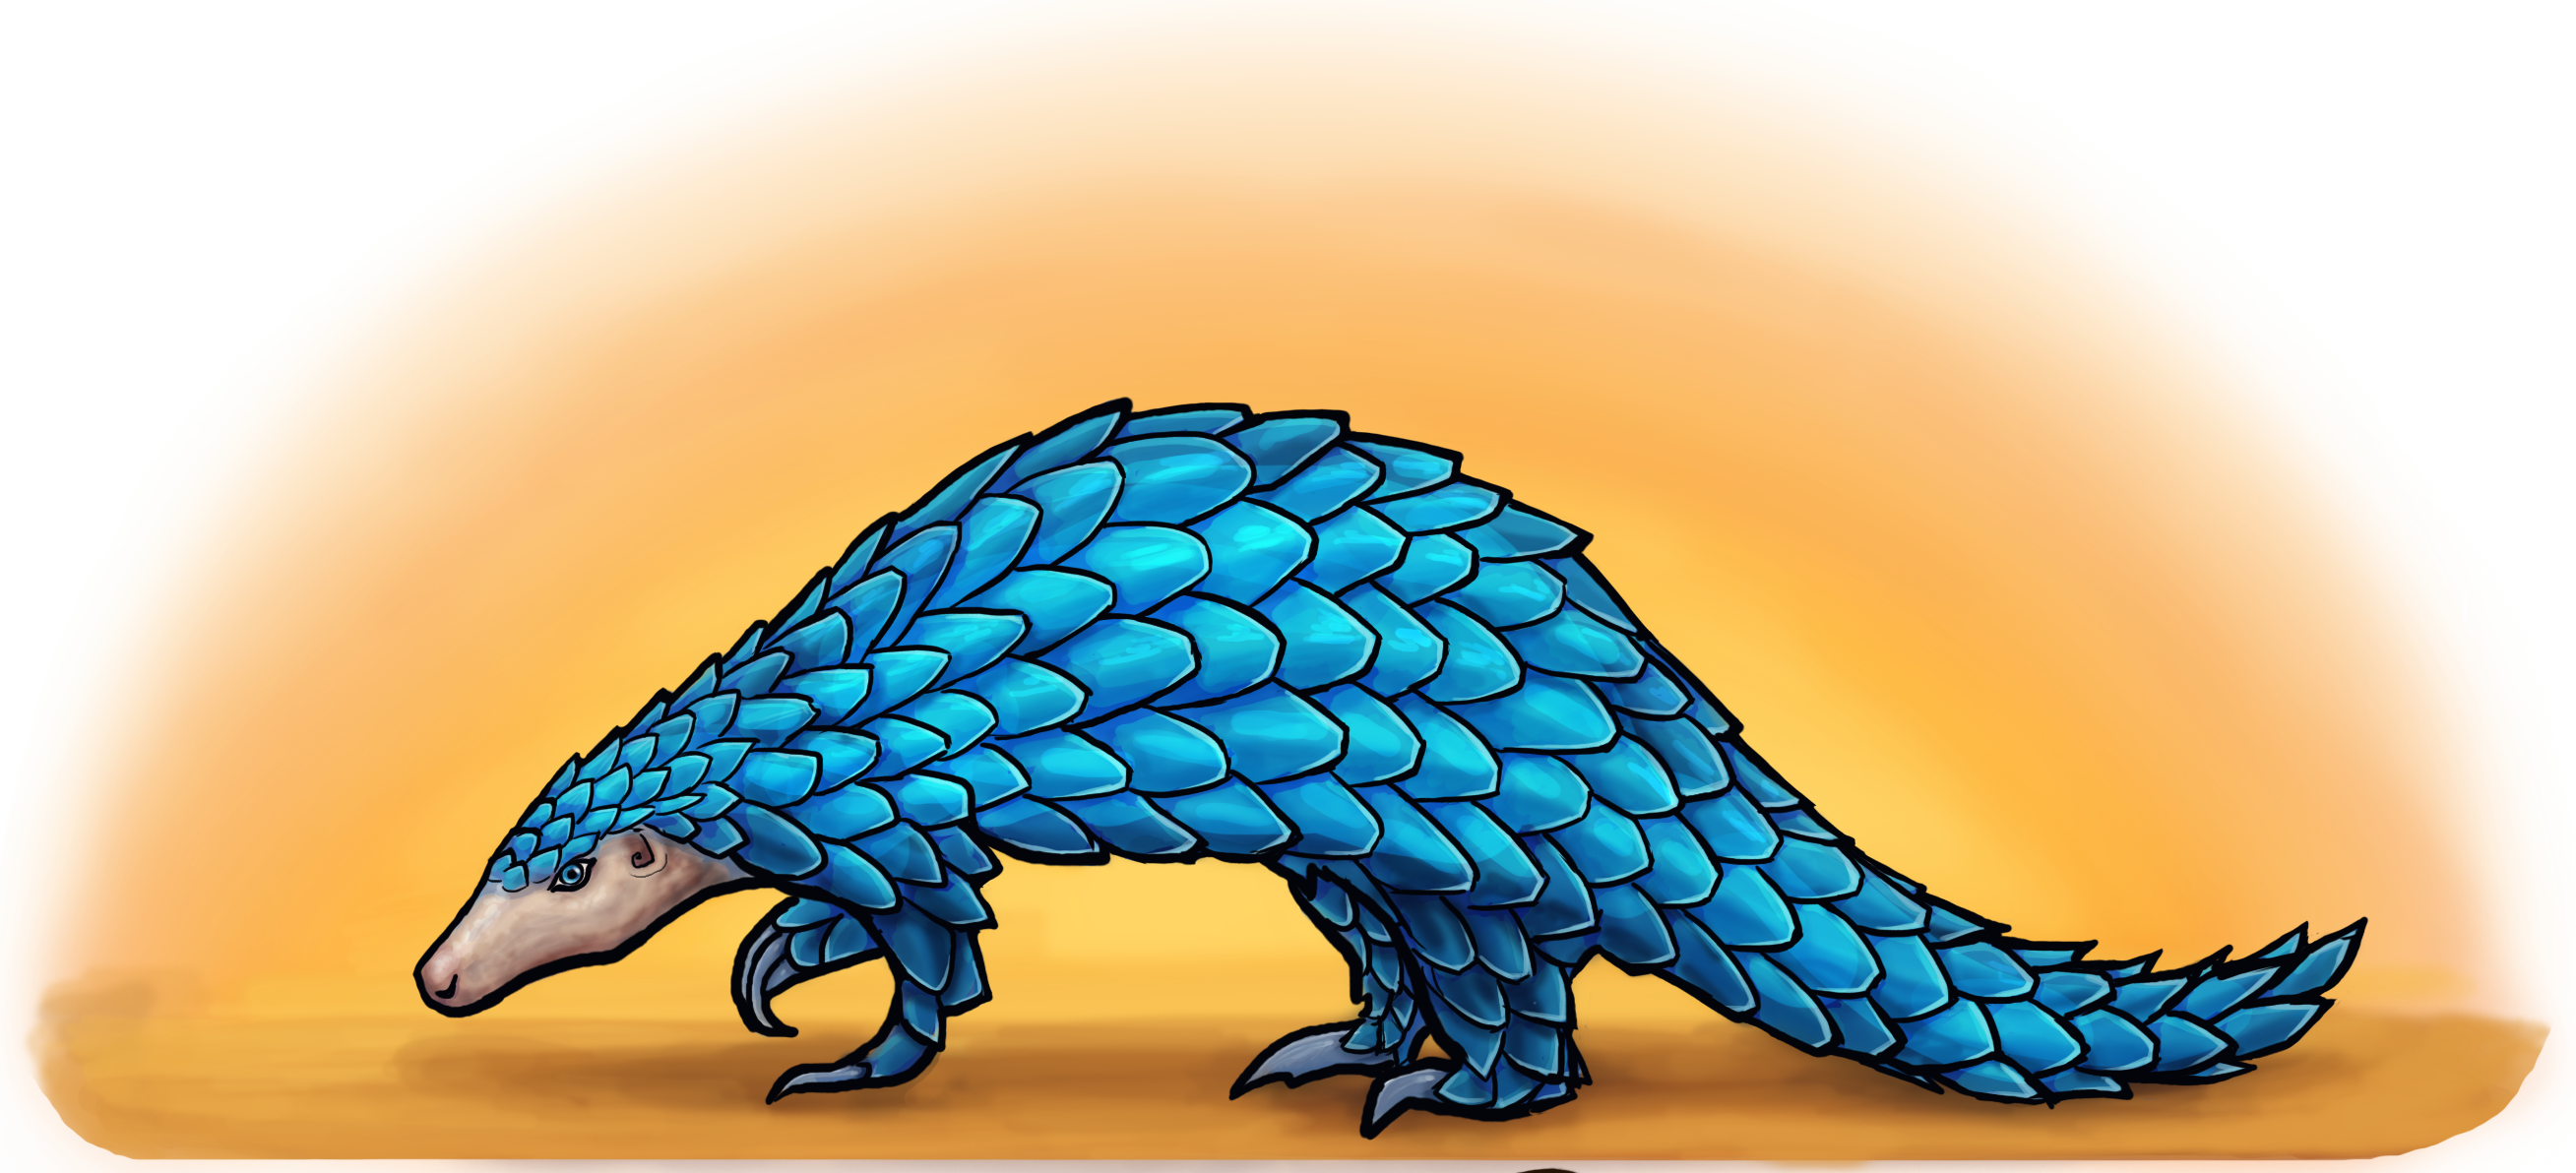 The Blue Pangolin